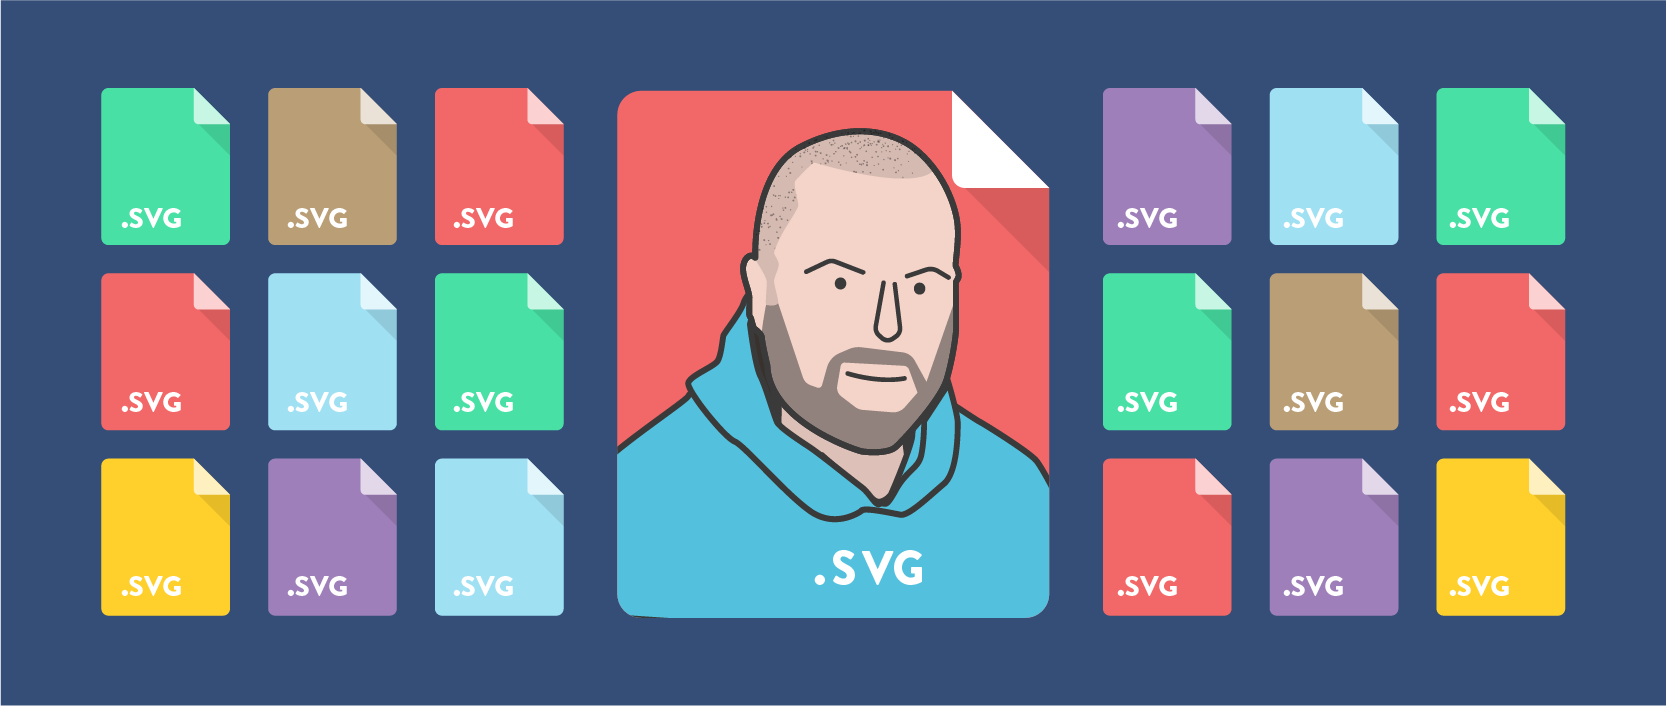 SVG – graphics for web devices with any screen resolution